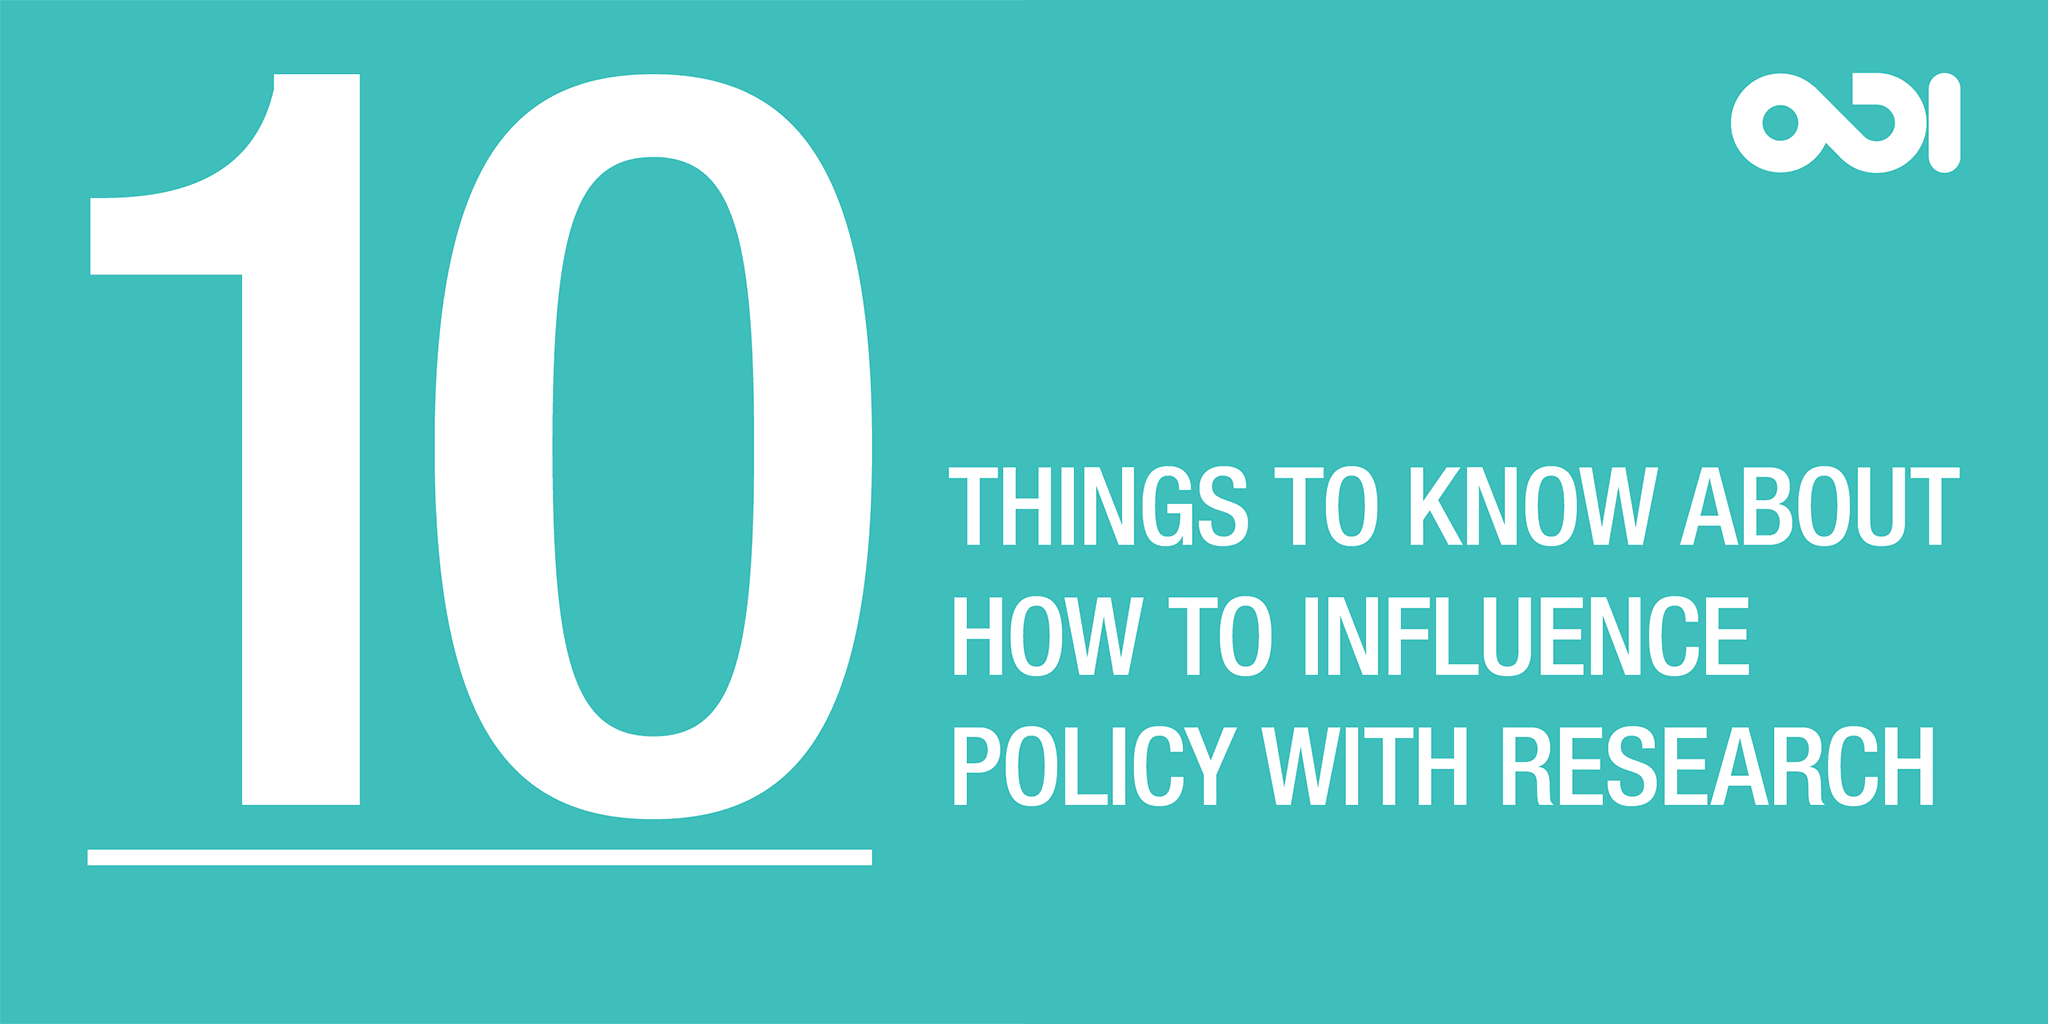 10 things to know about how to influence policy with research